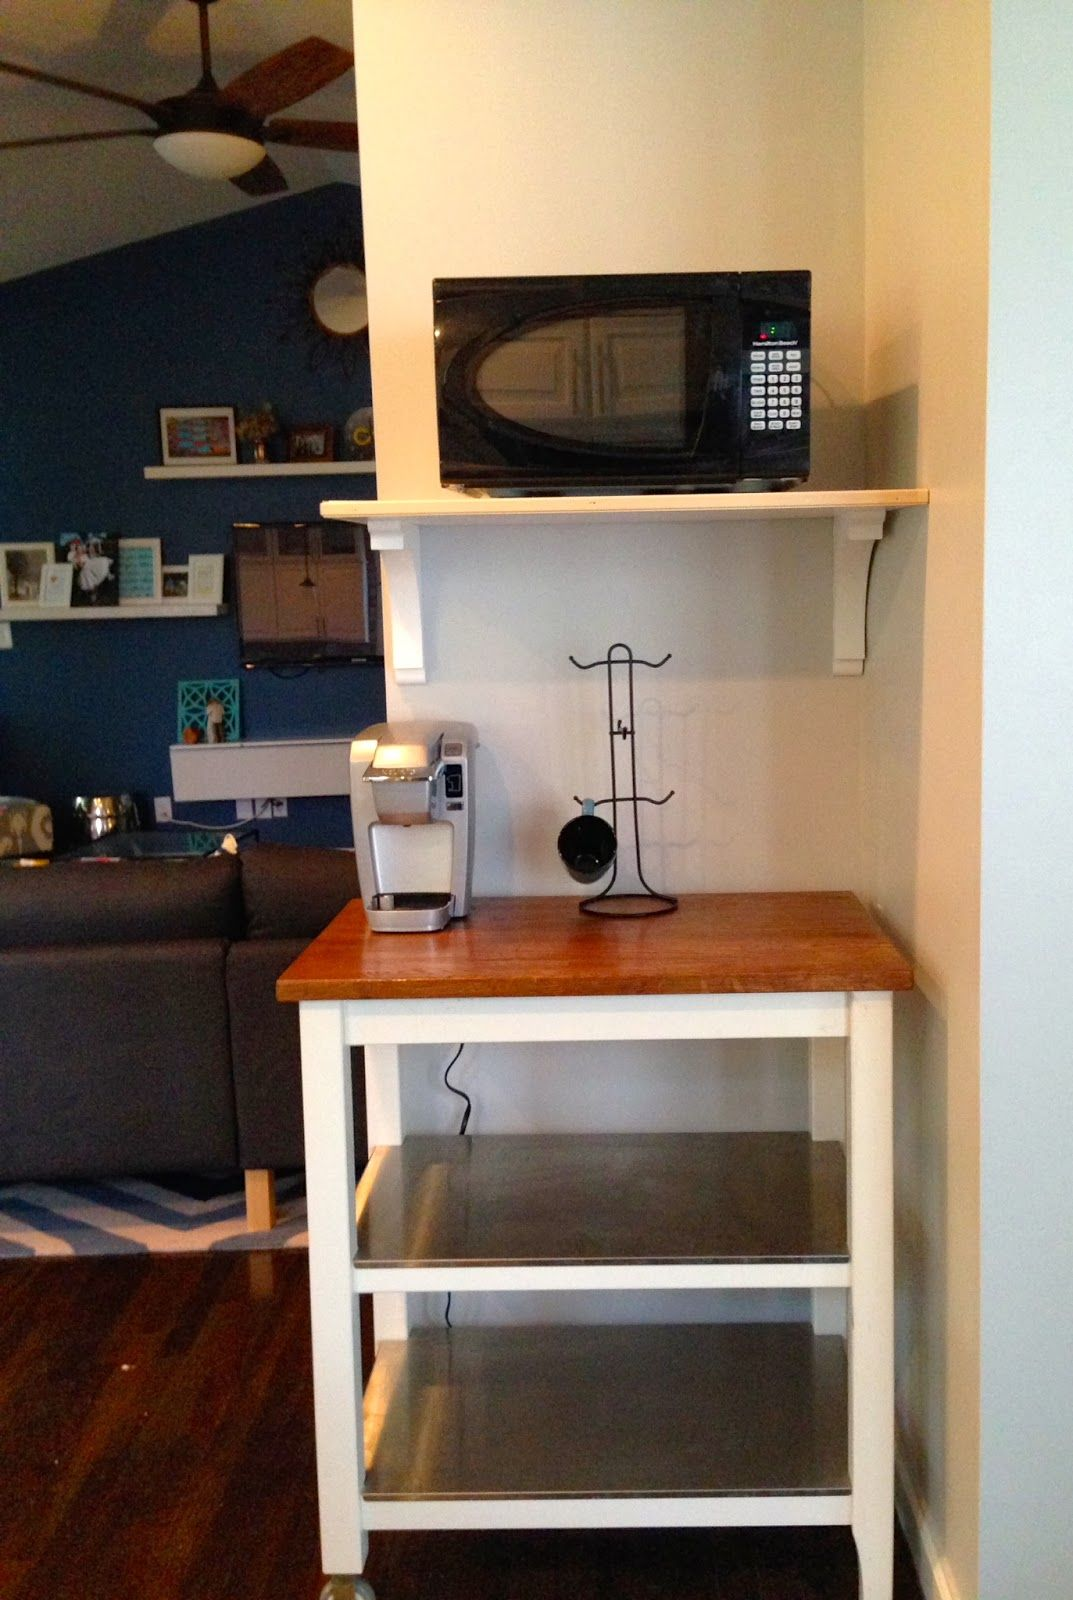 Furniture Diy Wood Wall Mounted Microwave Shelf Above Table With Rack Storage In The Corner For Kitchen Small Es Ideas